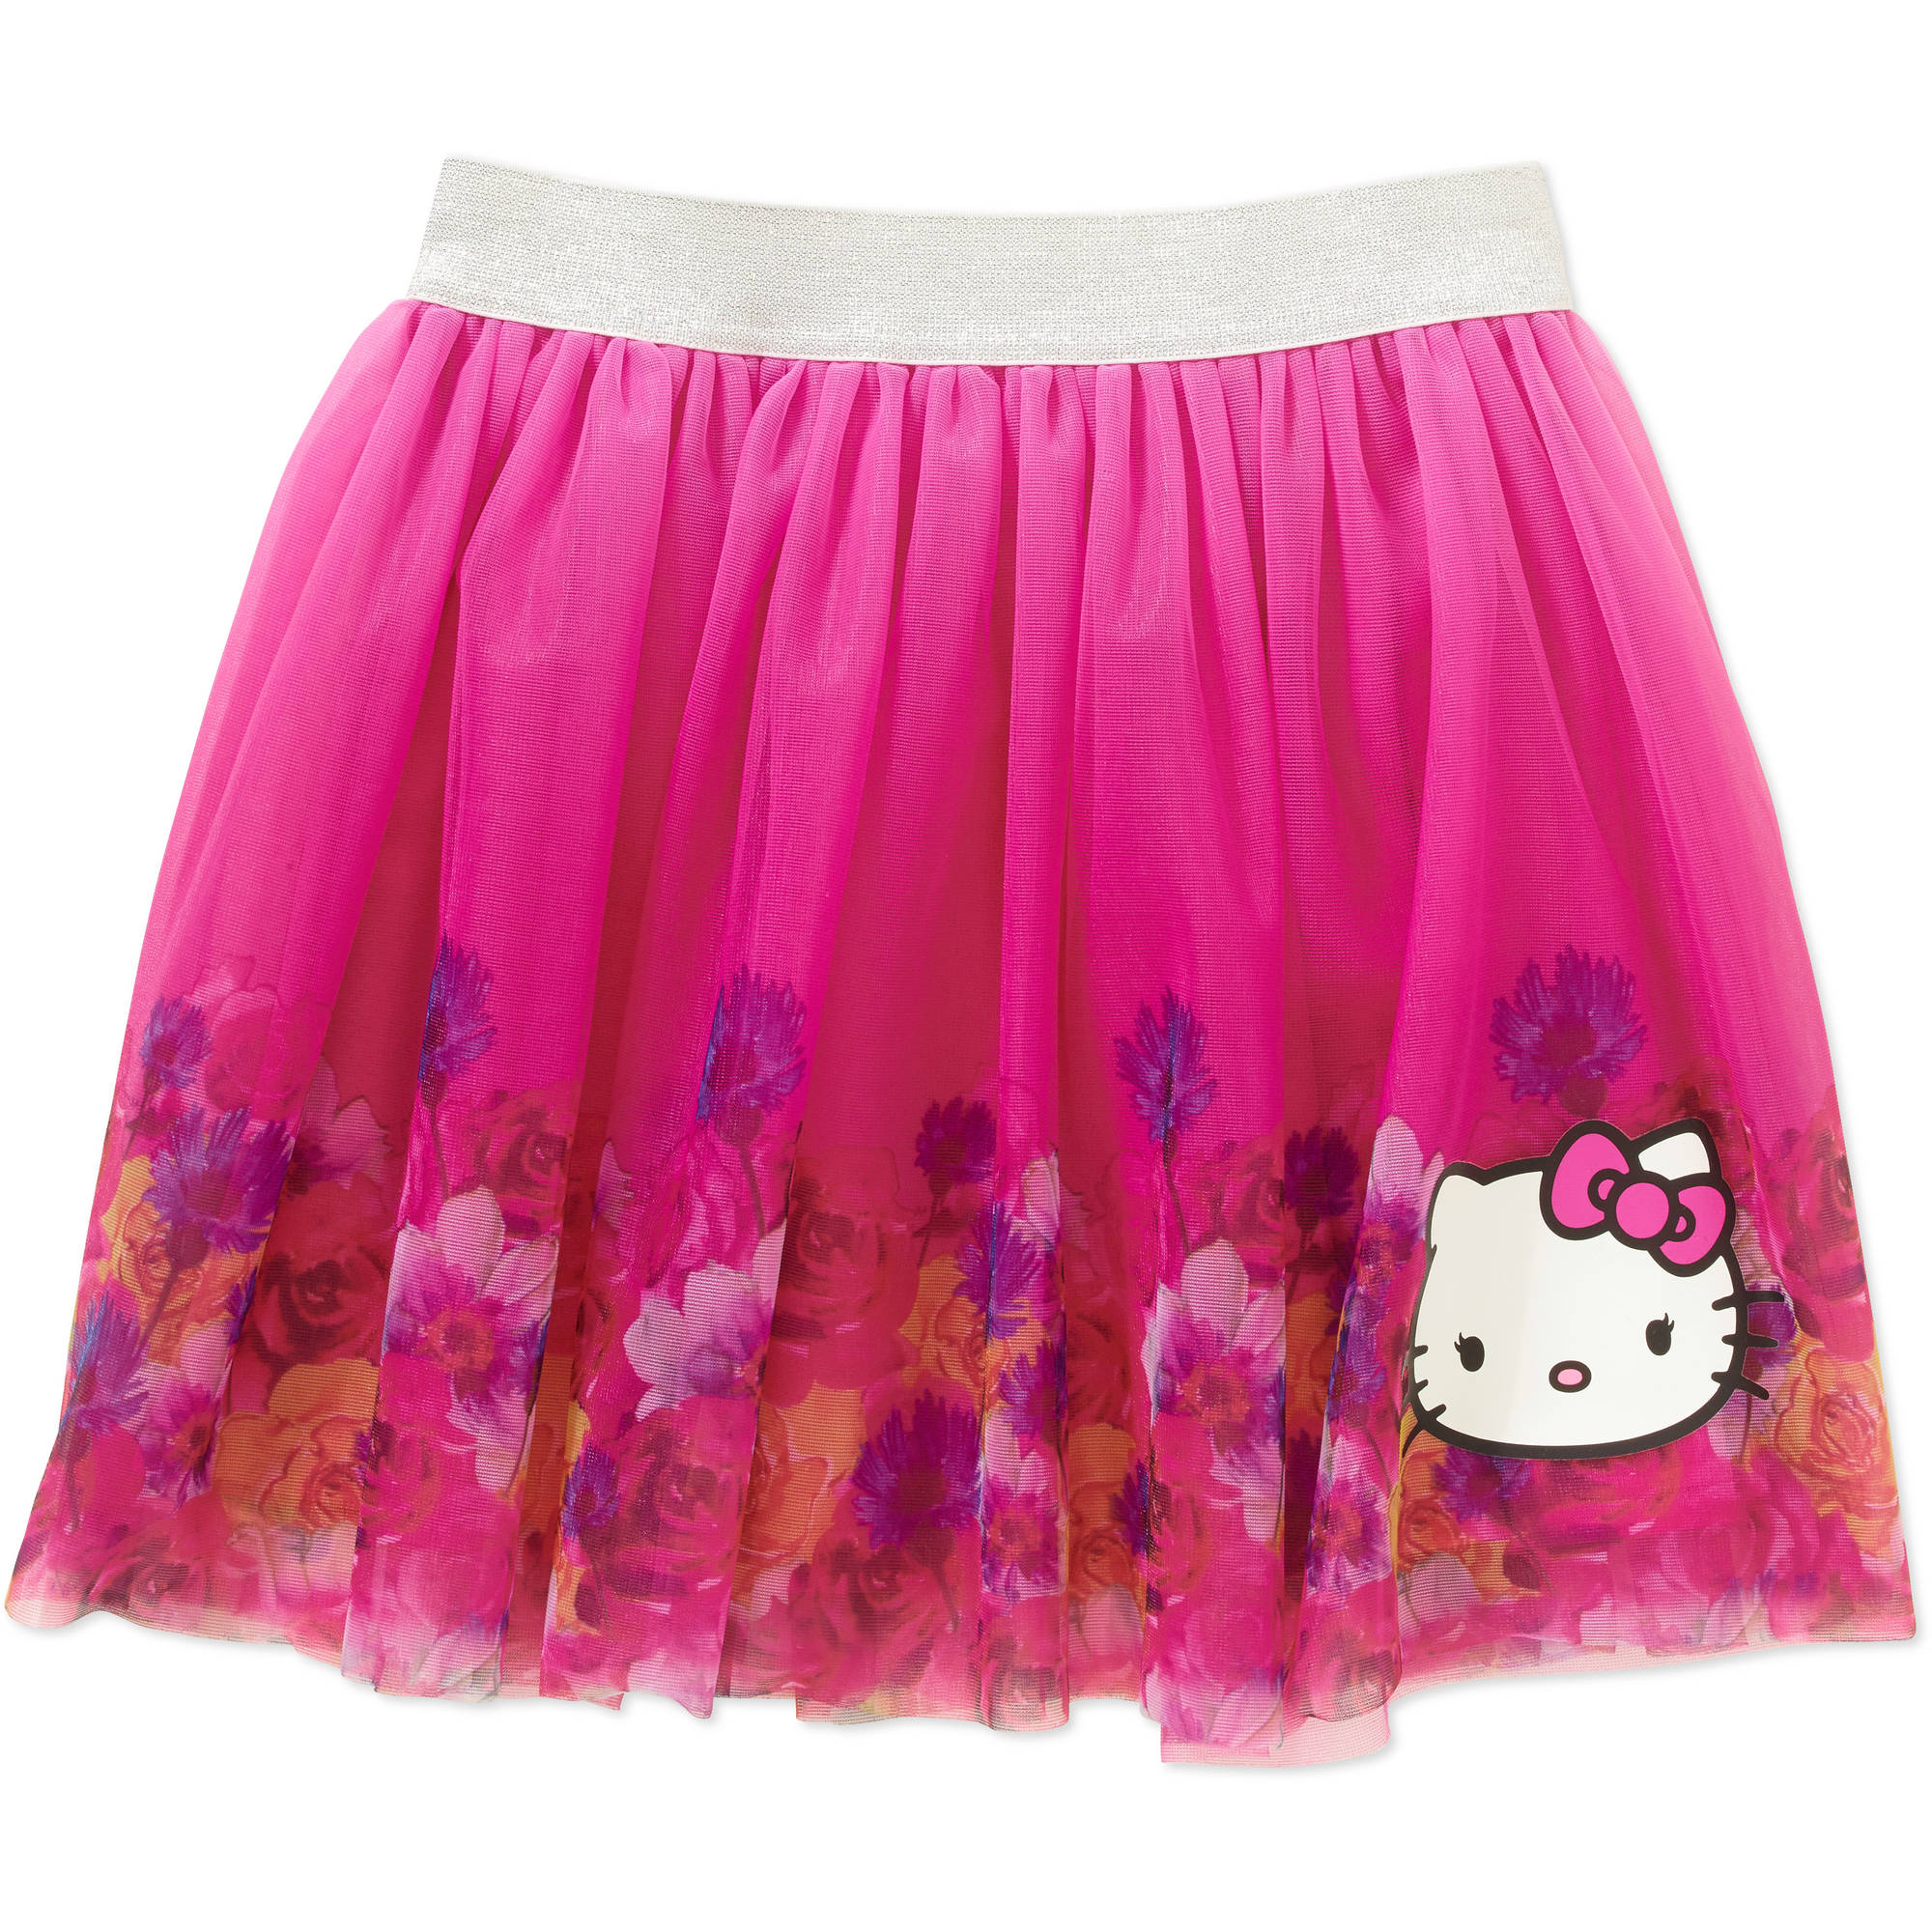 Hello Kitty Girls' Skirt with Applique